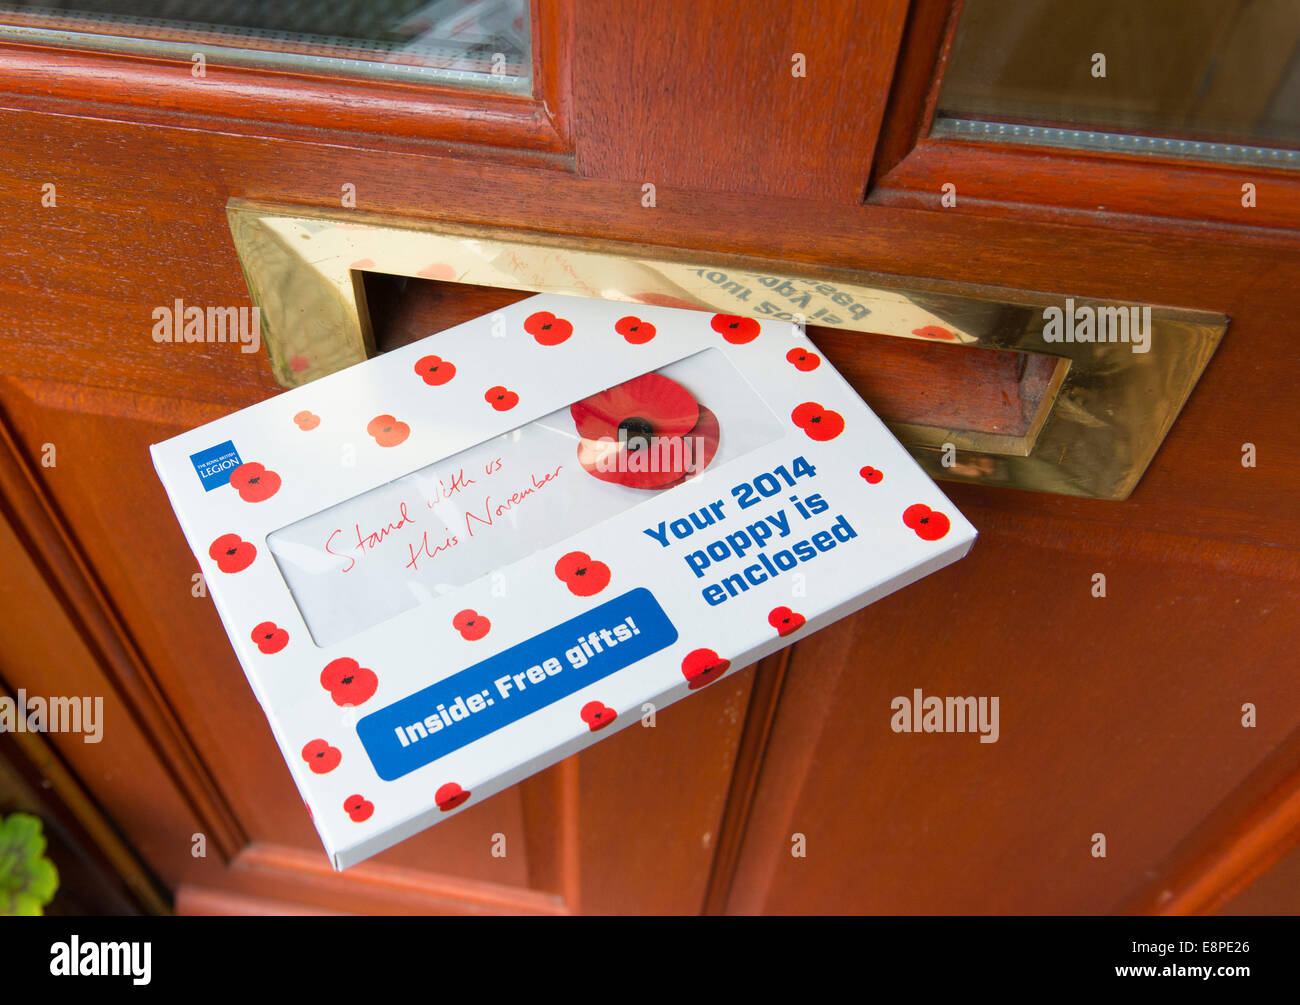 Postal campaign underway for this year's Royal British Legion annual Poppy Appeal: Monday October 13th 2014, - Stock Image